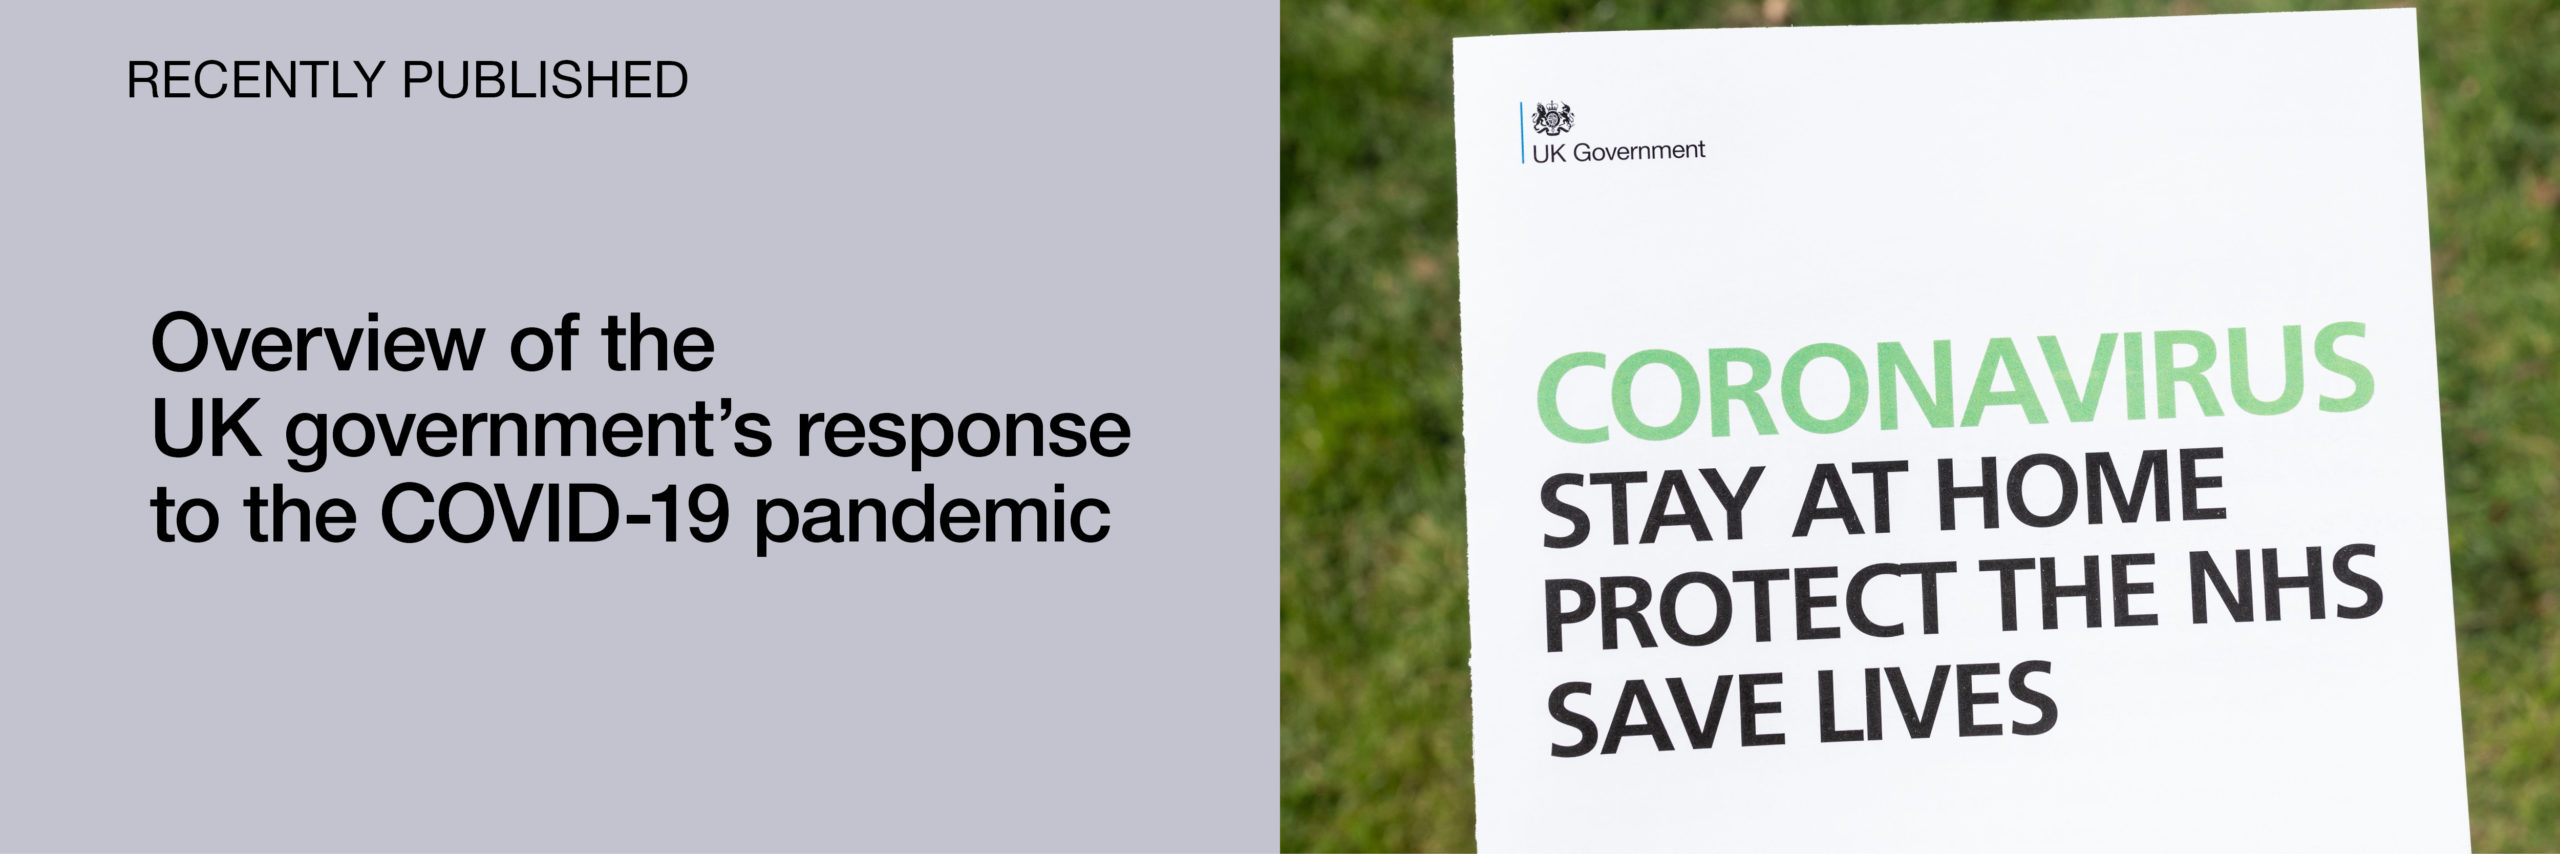 Recently published: Overview of the UK government's response to the COVID-19 pandemic